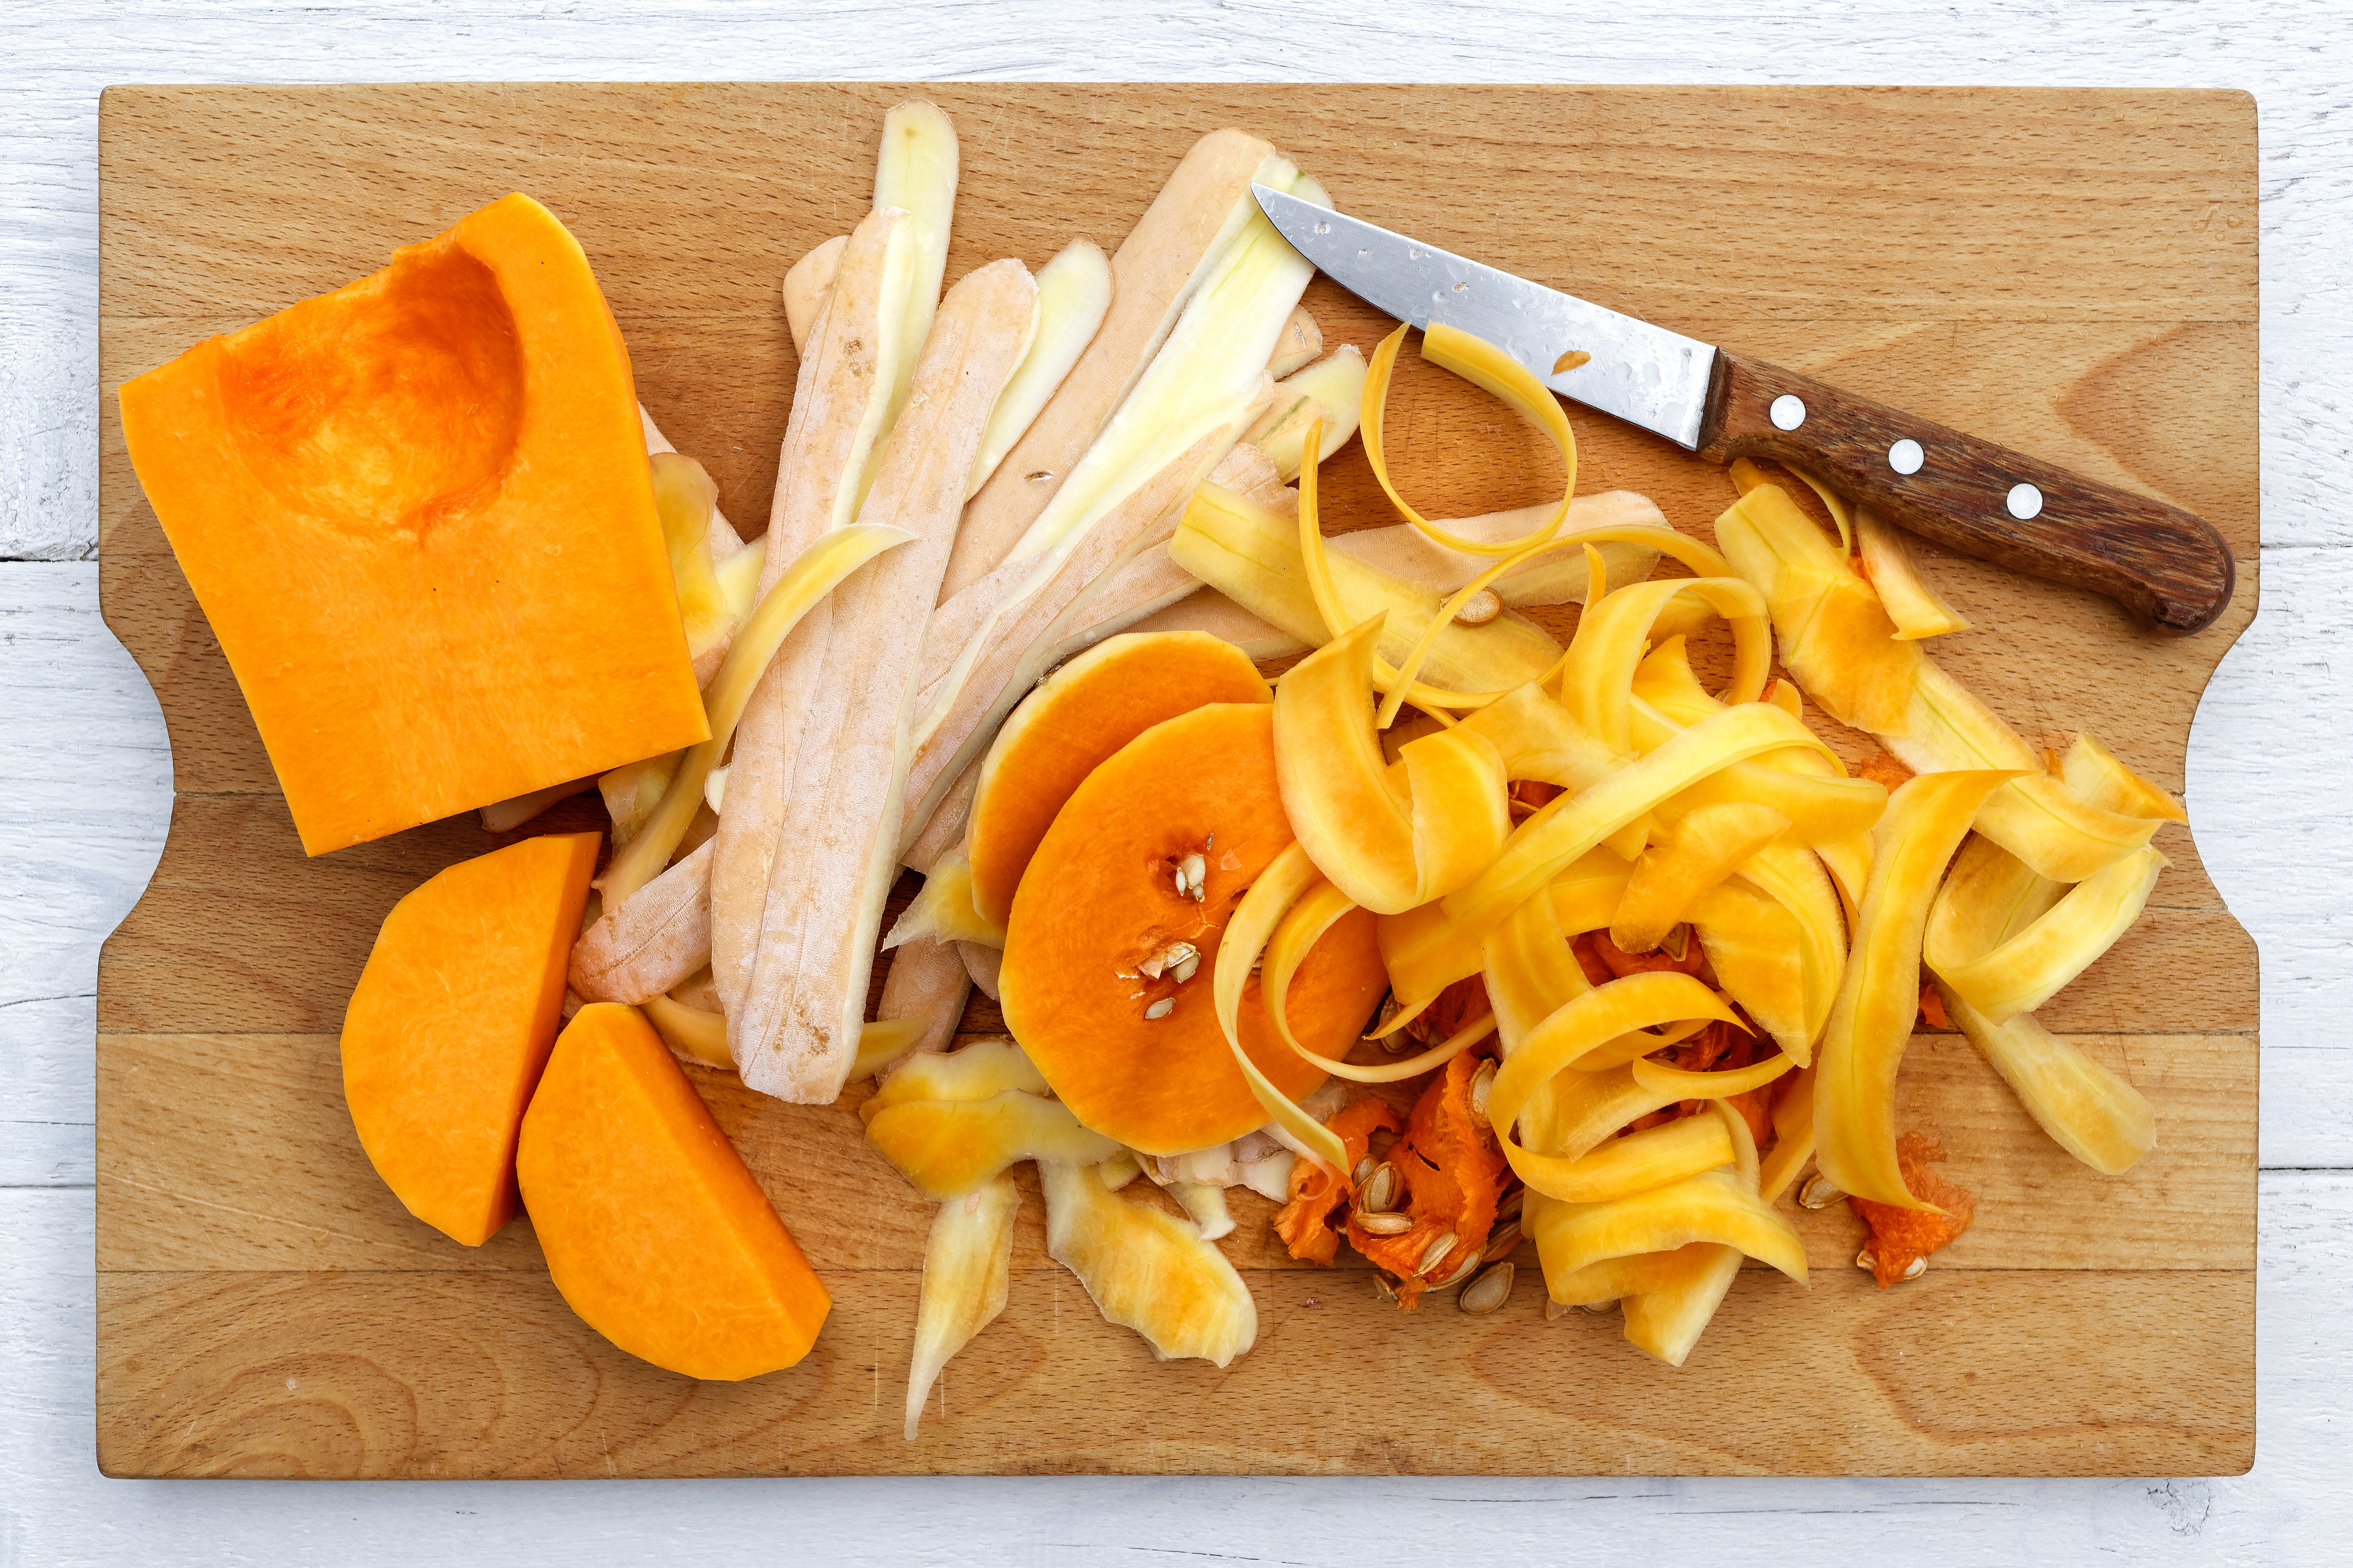 Cut up butternut squash with peels and knife on brown wood chopping board isolated on white from above.